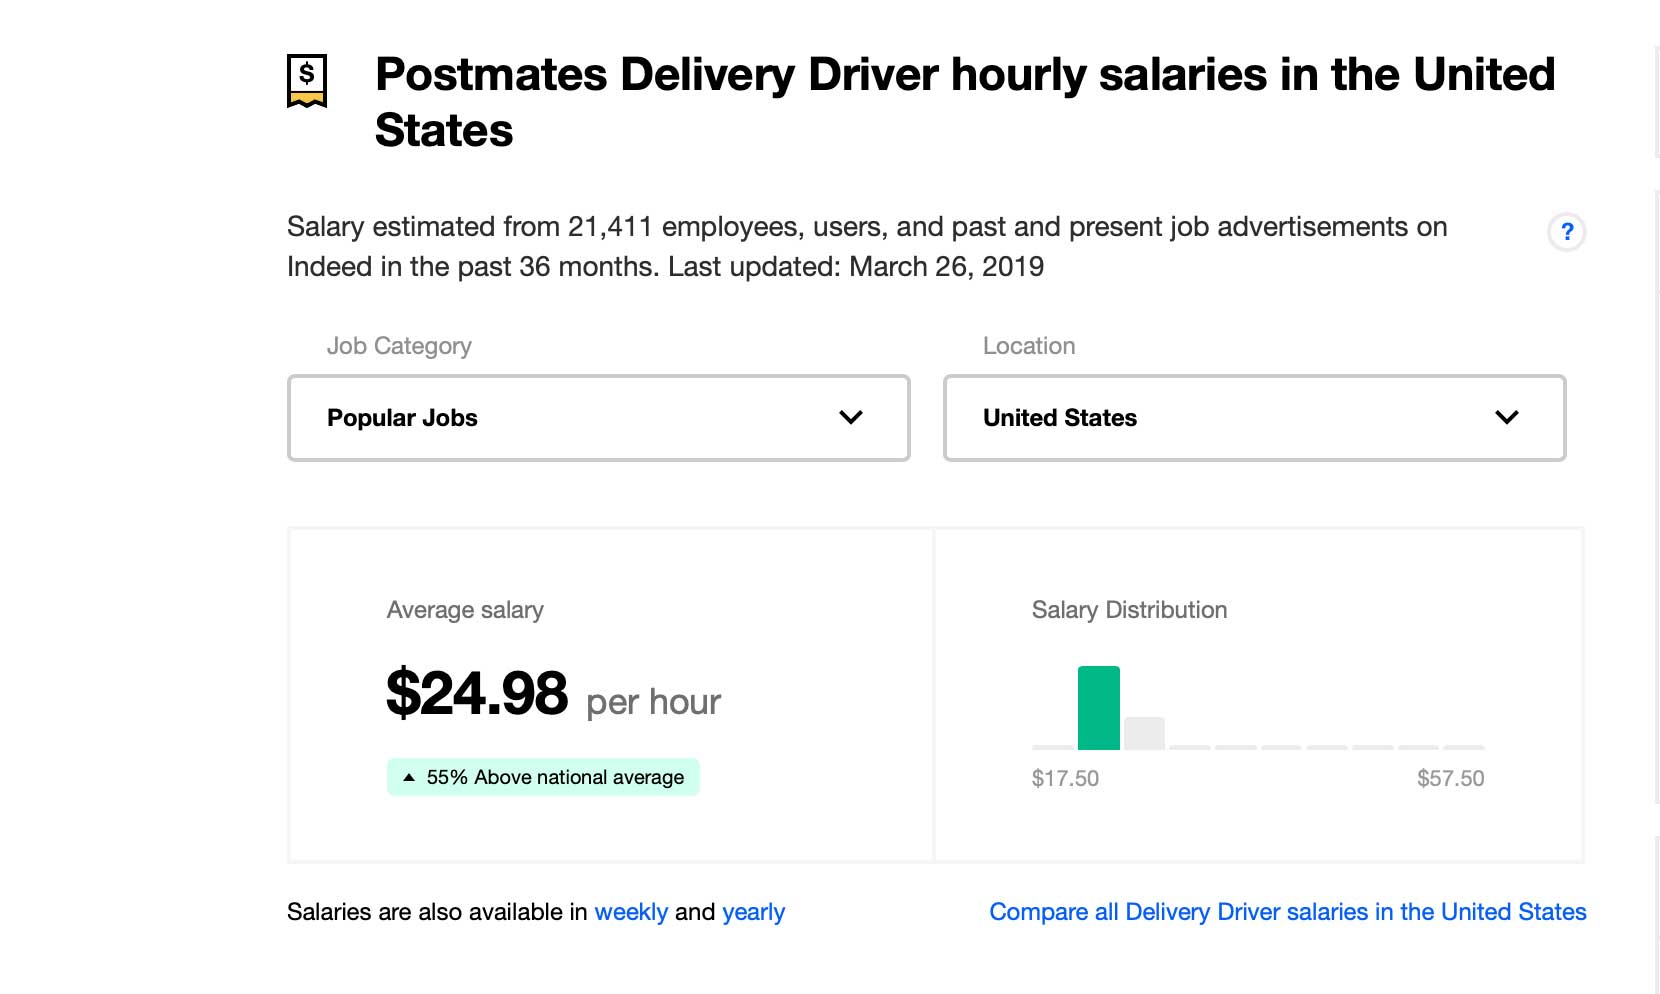 Postmates delivery driver hourly salary